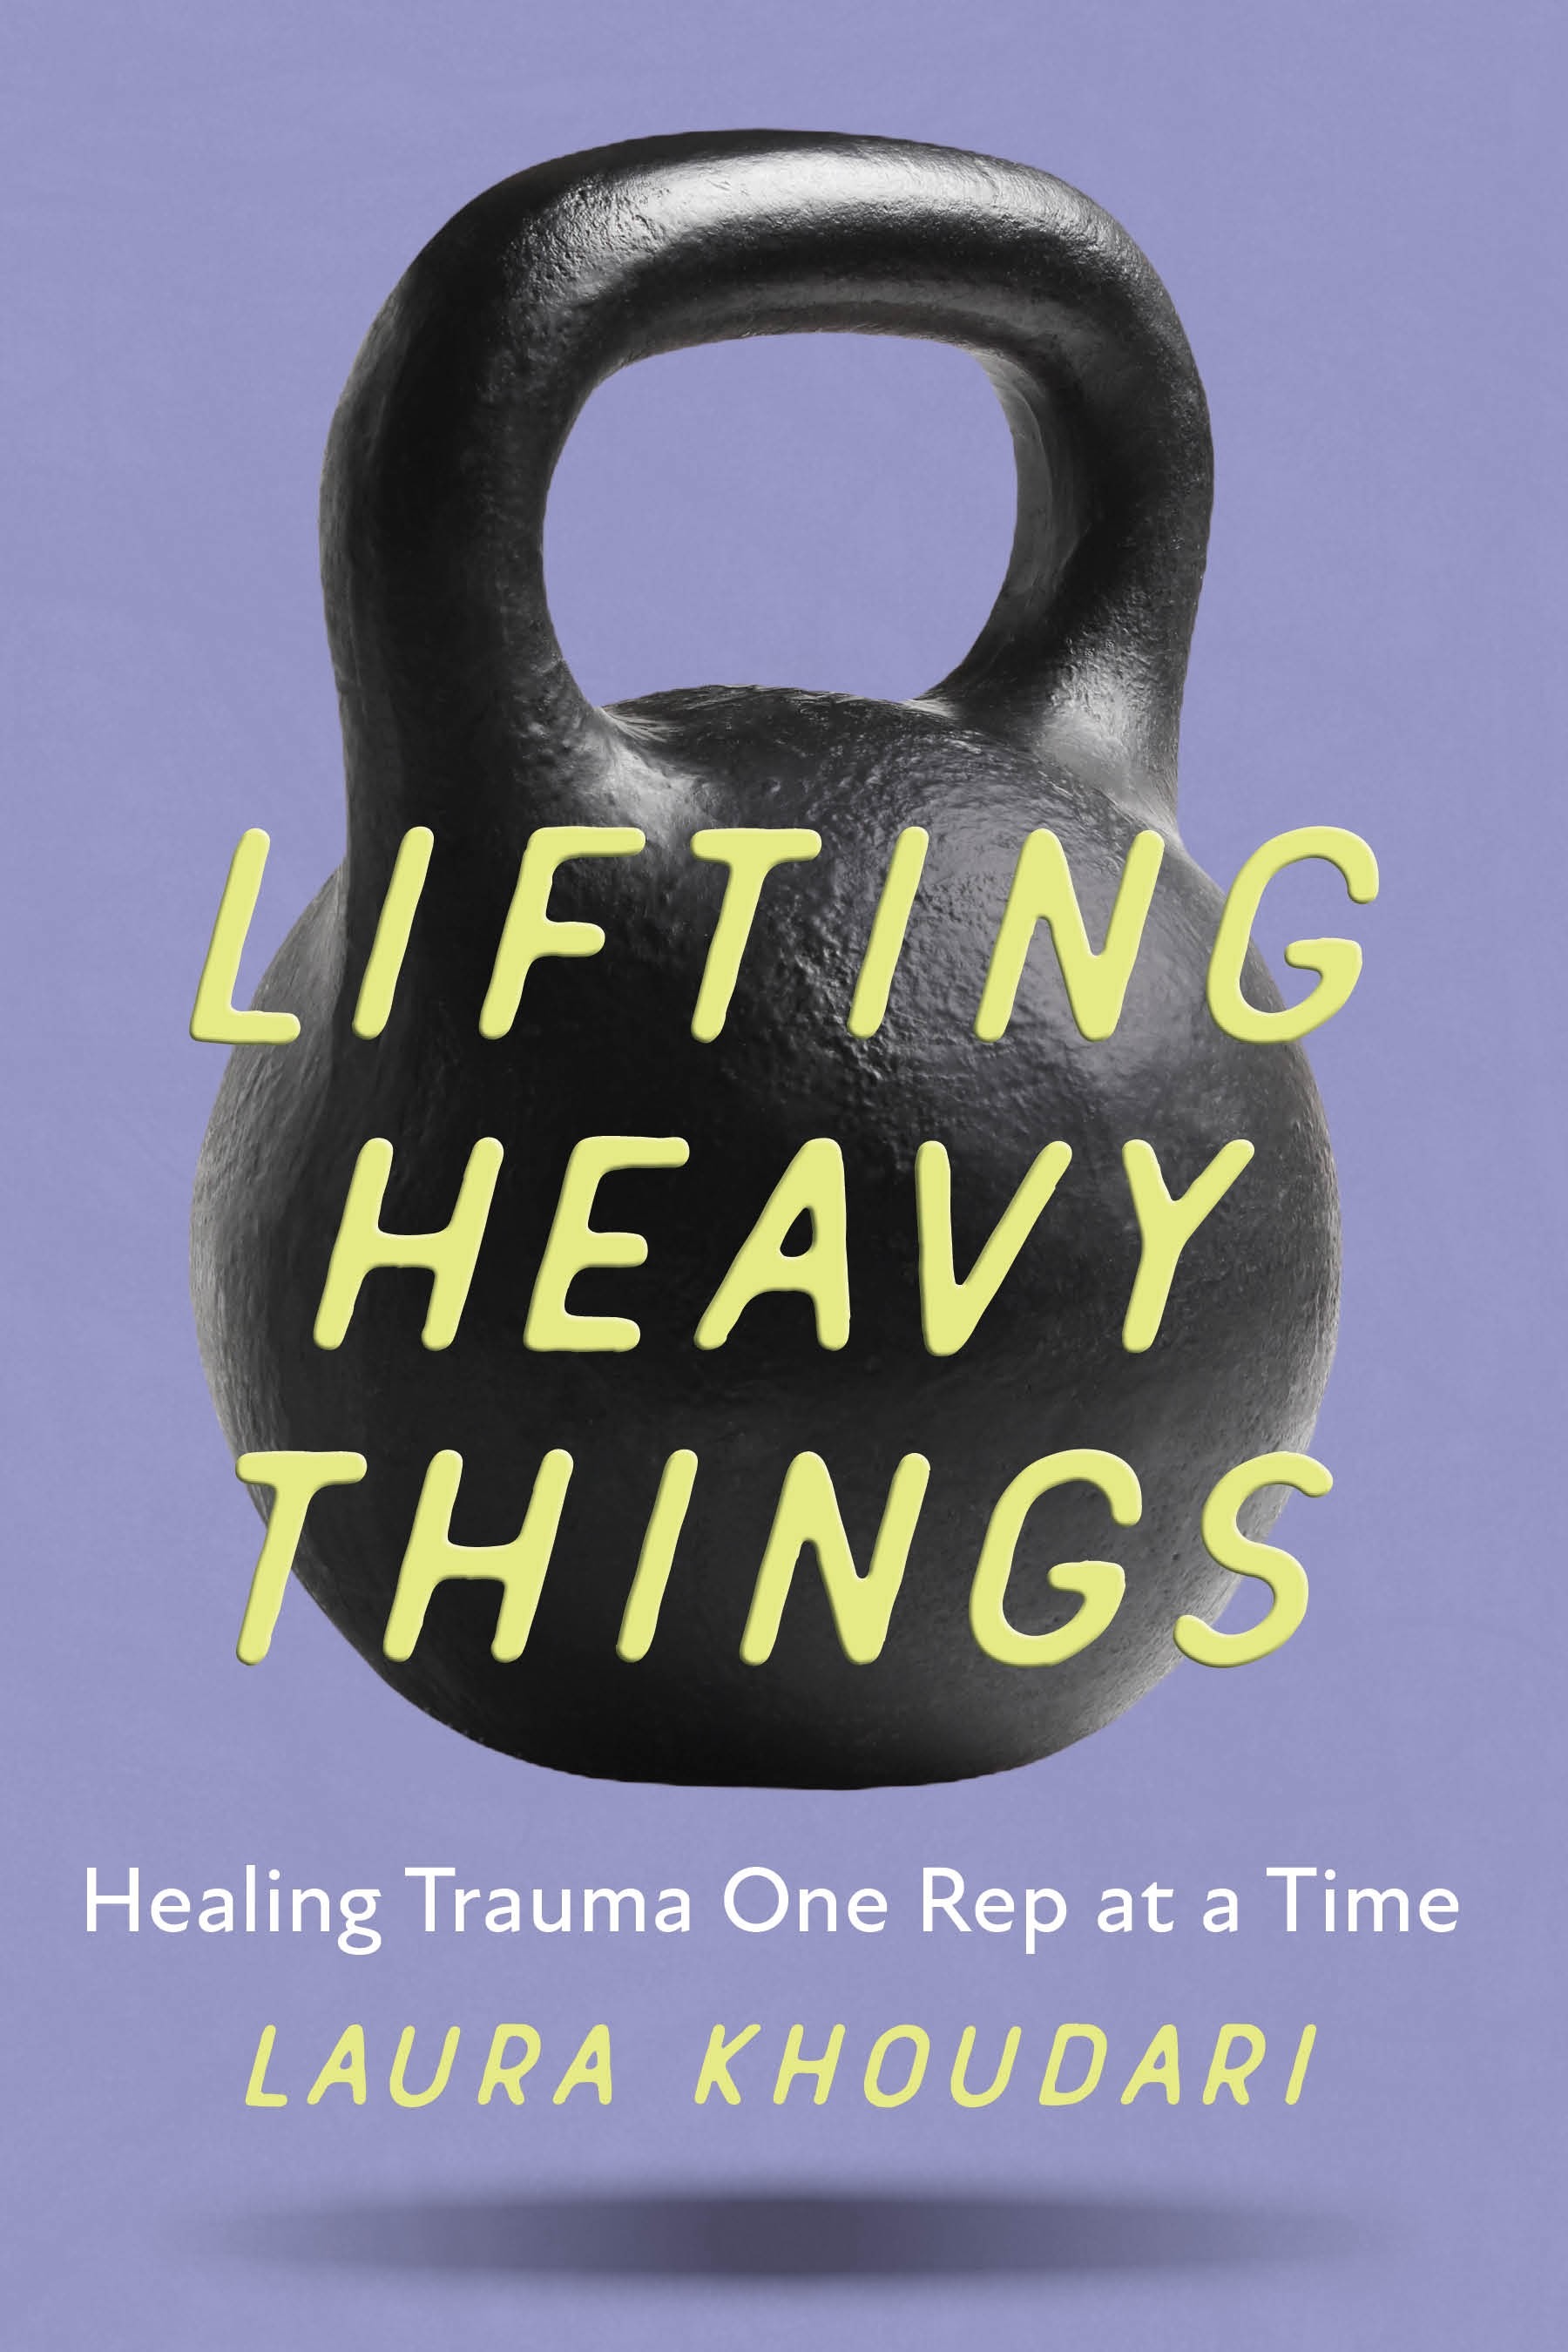 Bookcover: an oversized kettlebell on a purple background, Lifting Heavy Things: Healing Trauma One Rep at a Time